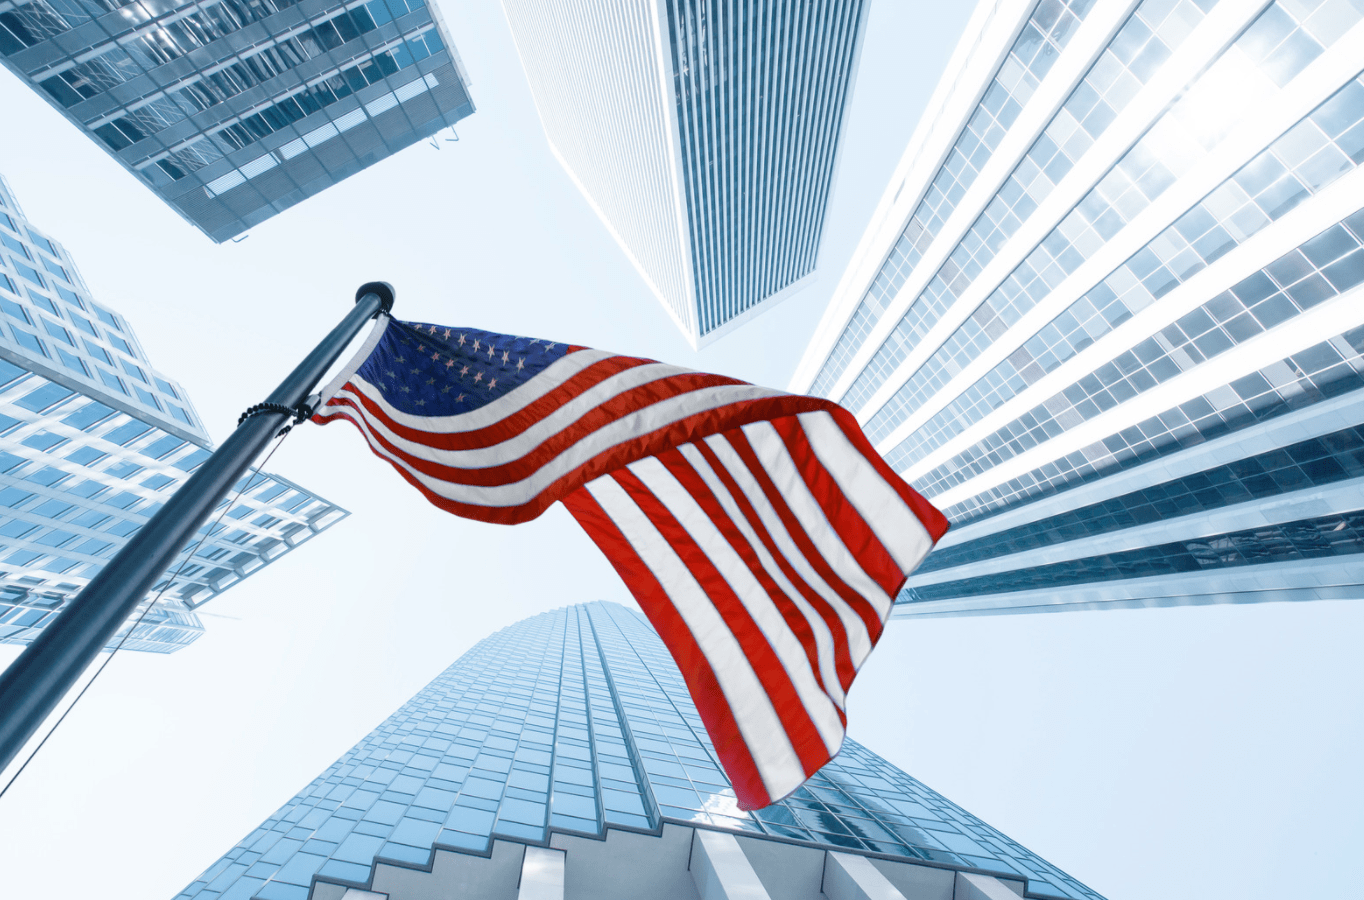 Stimulus, Growth, Recovery, and Change: Q1 of 2021 Economic Update